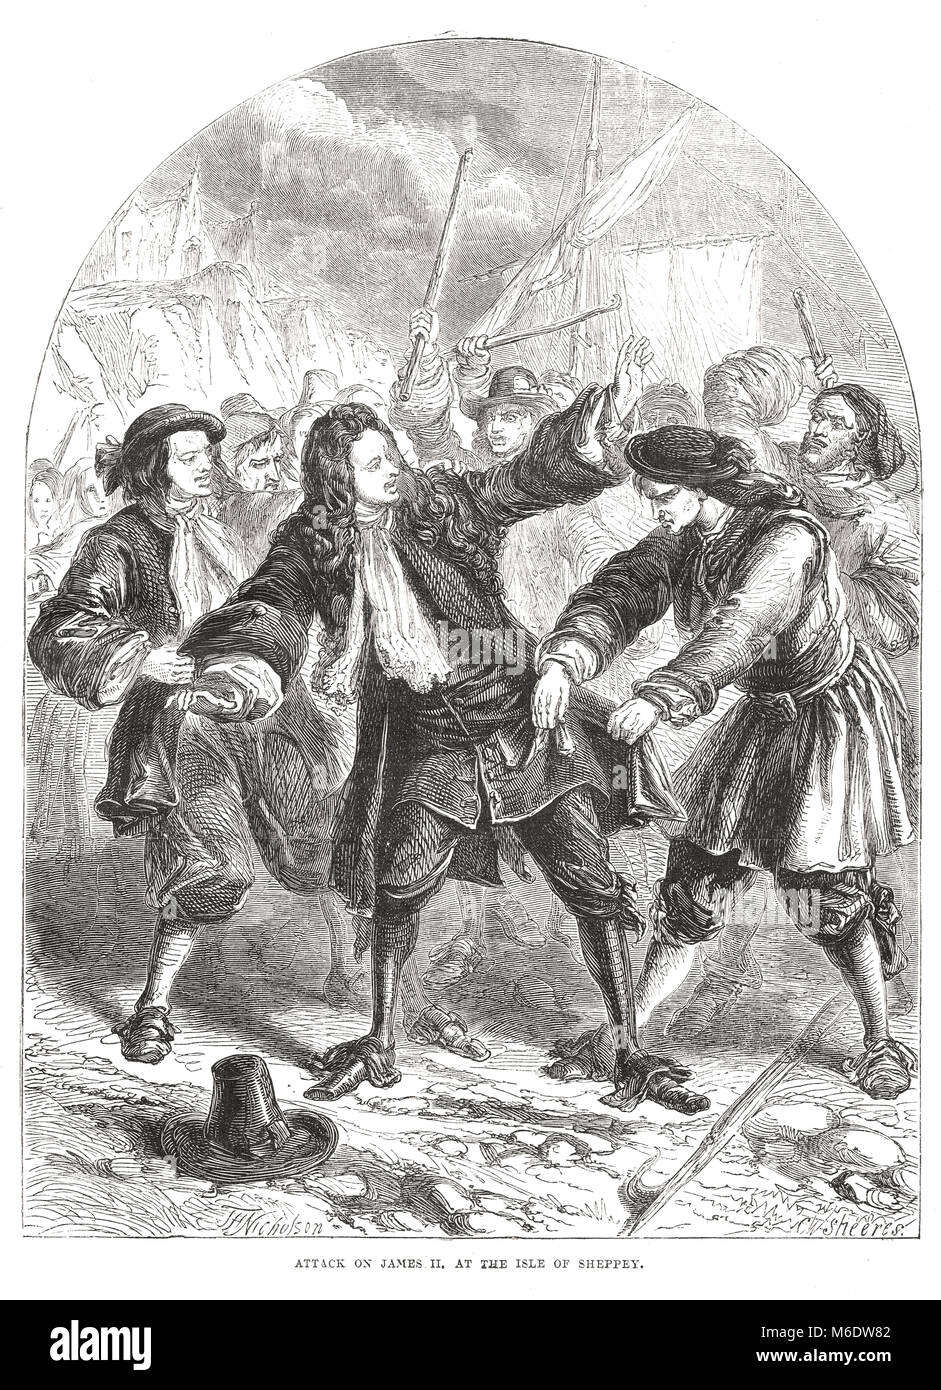 Attack on James II at the isle of Sheppey. The flight of James II, December 1688.  Glorious Revolution of 1688 - Stock Image